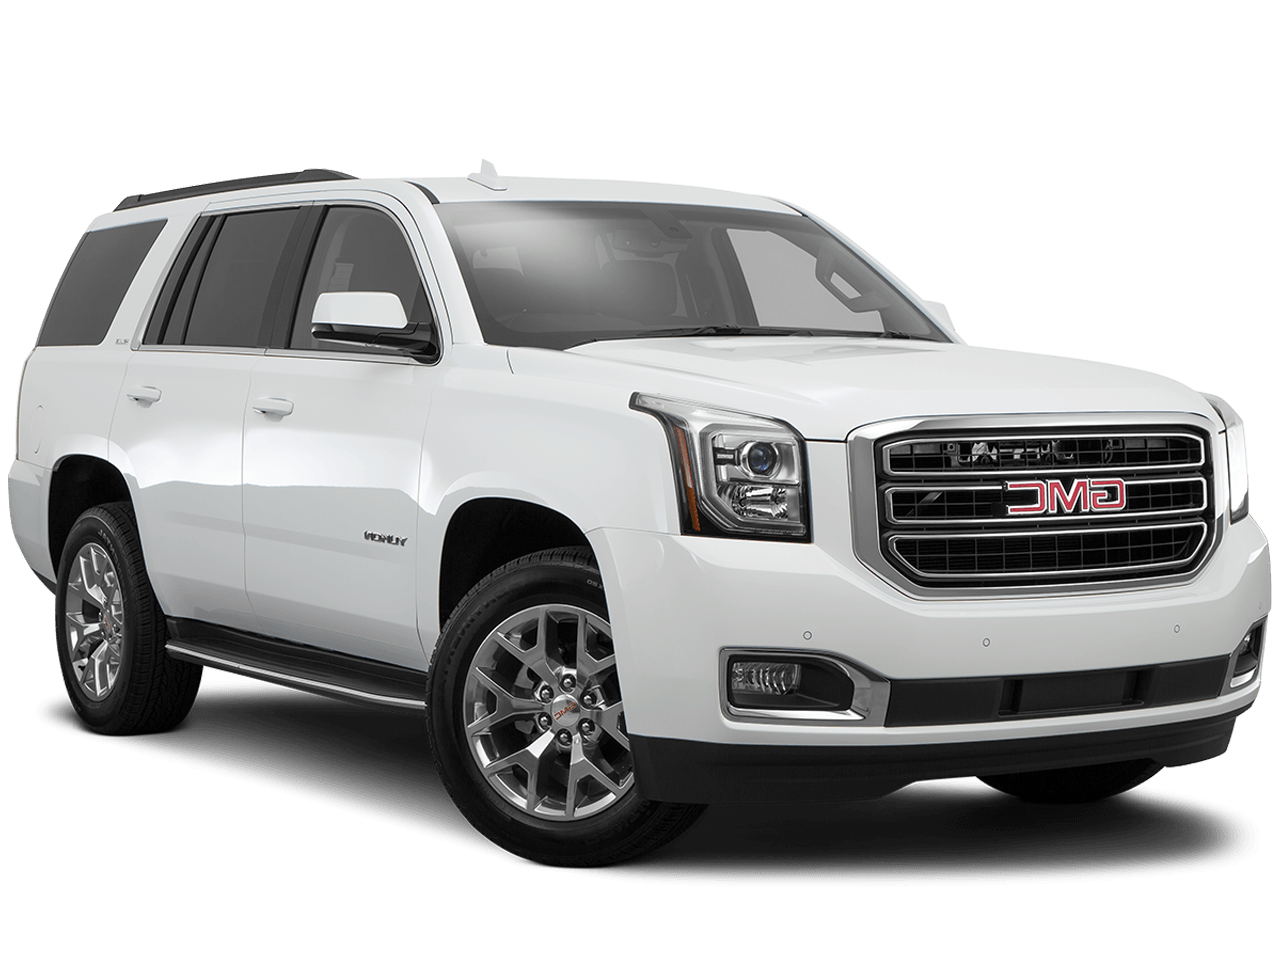 New Gmc Yukon at Quirk Buick GMC